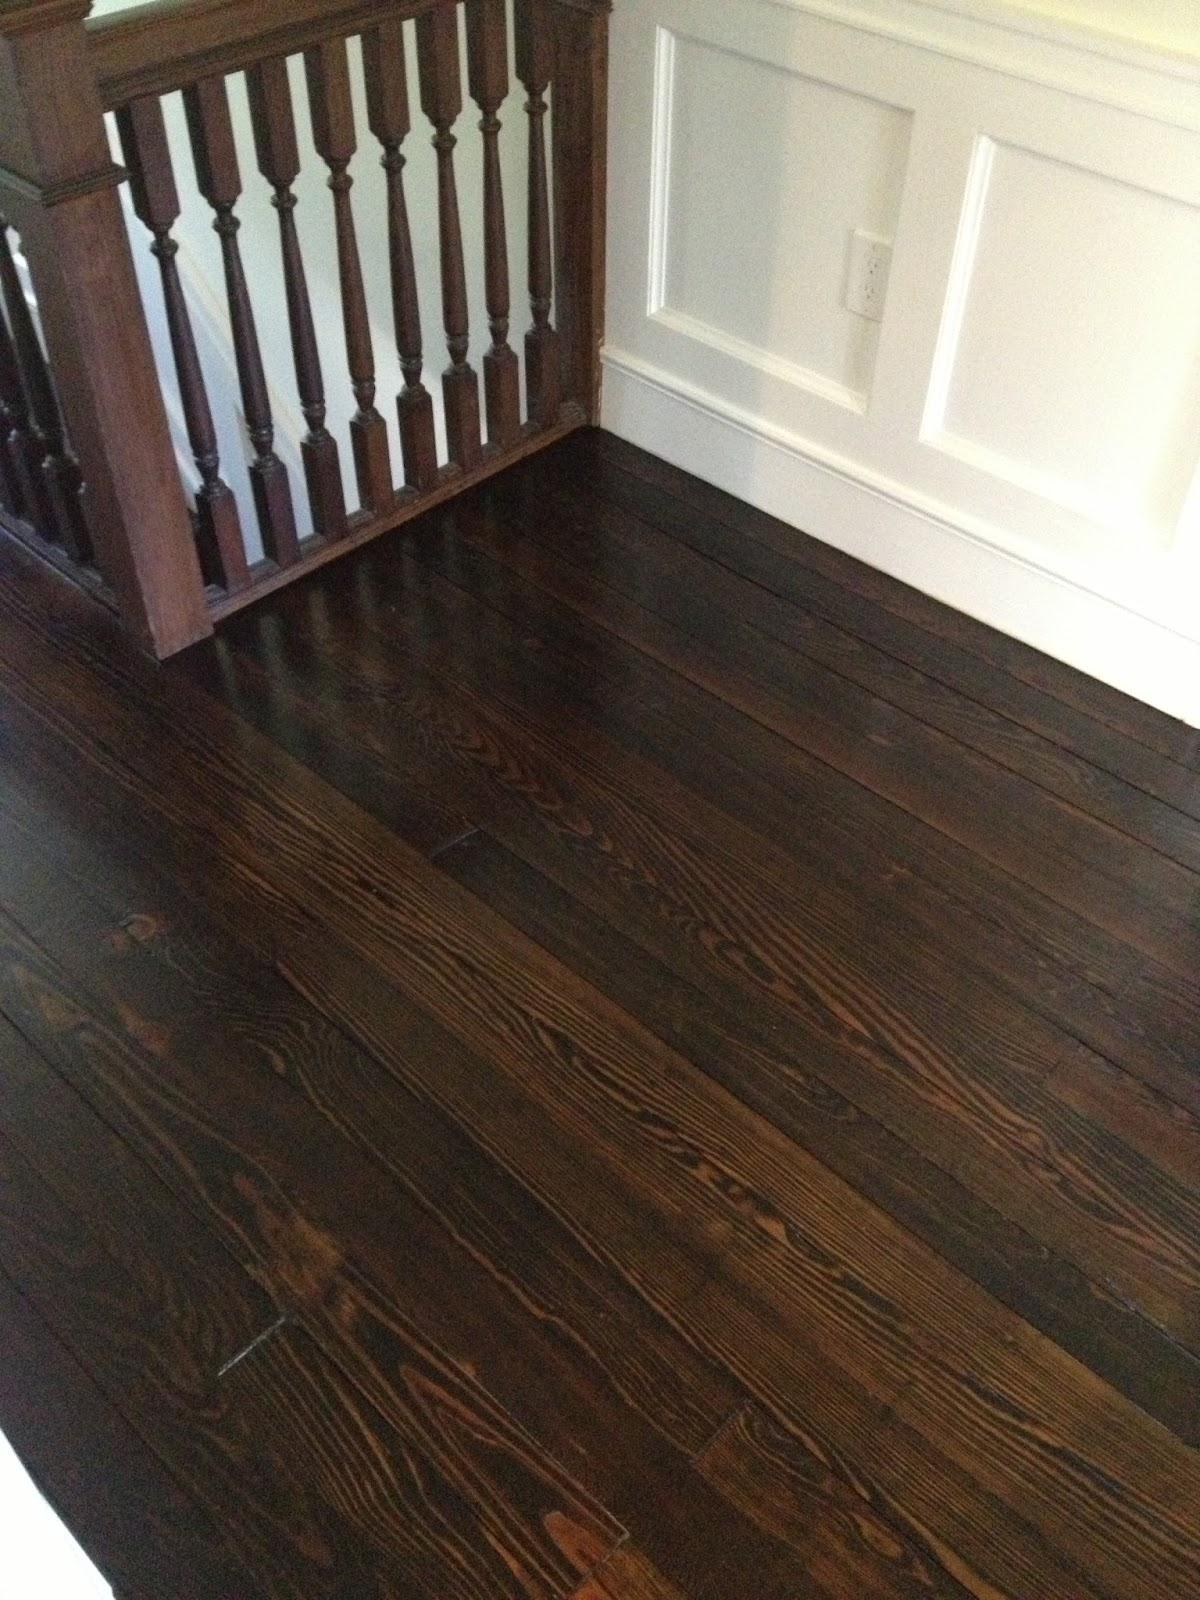 High Street Market 3rd Floor Refinished Hardwood Floor Diy